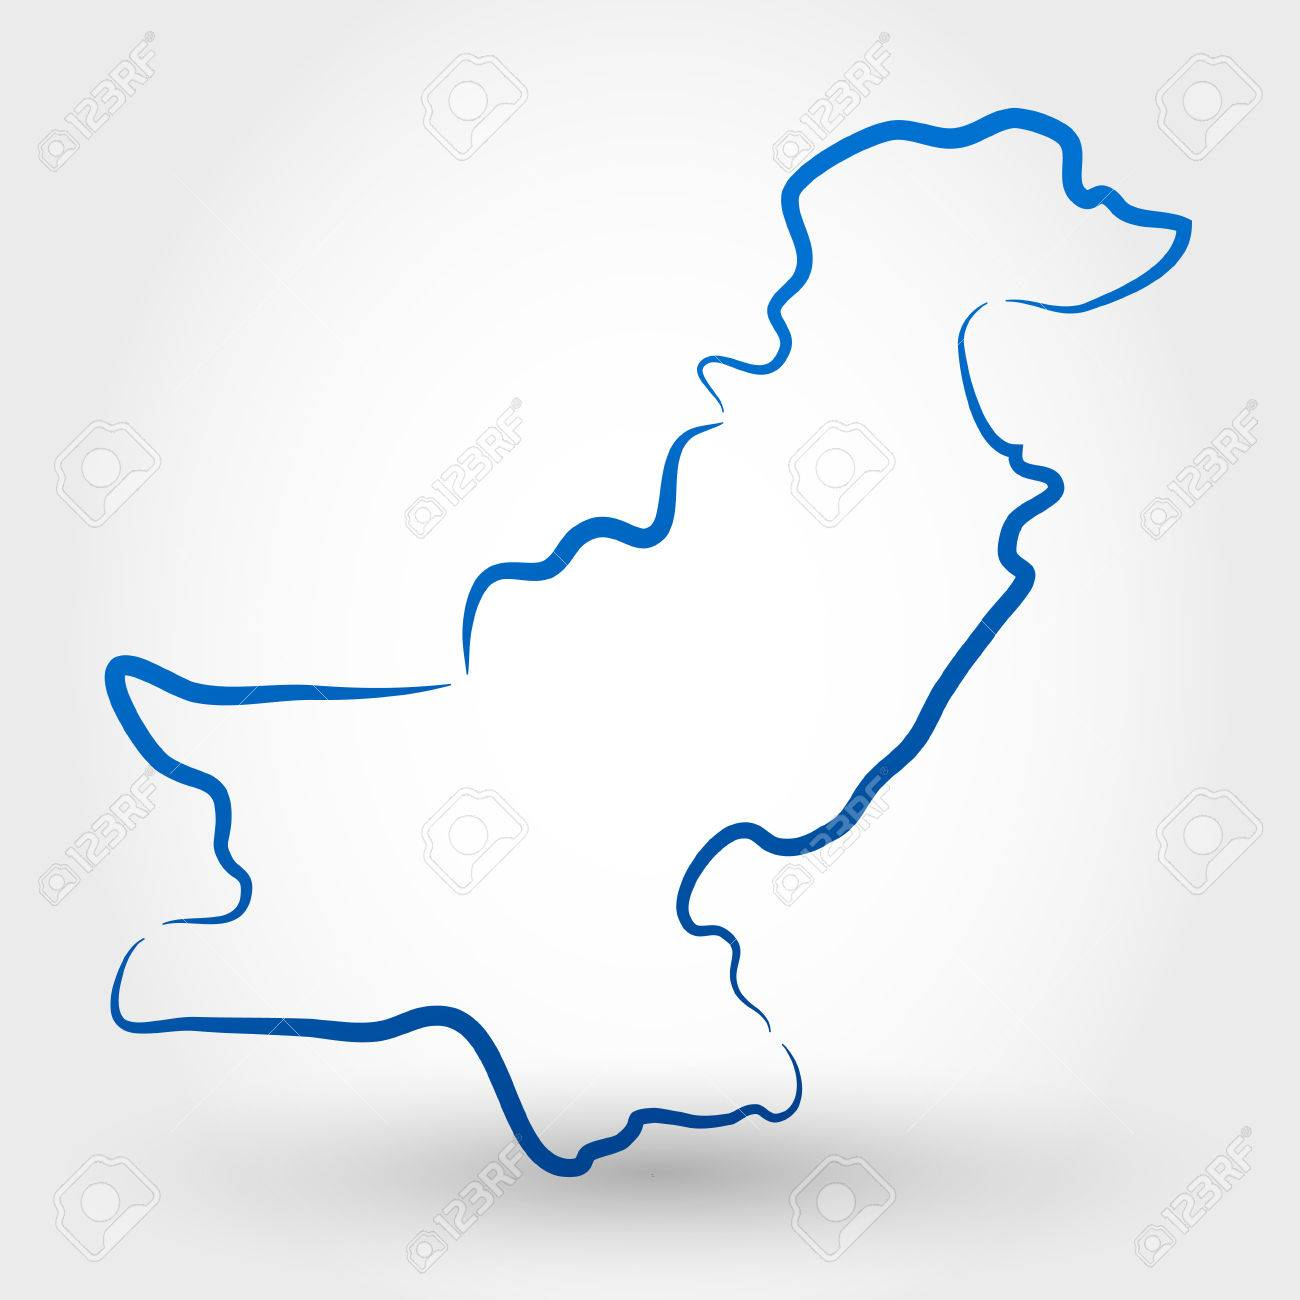 Pakistan Map Outline